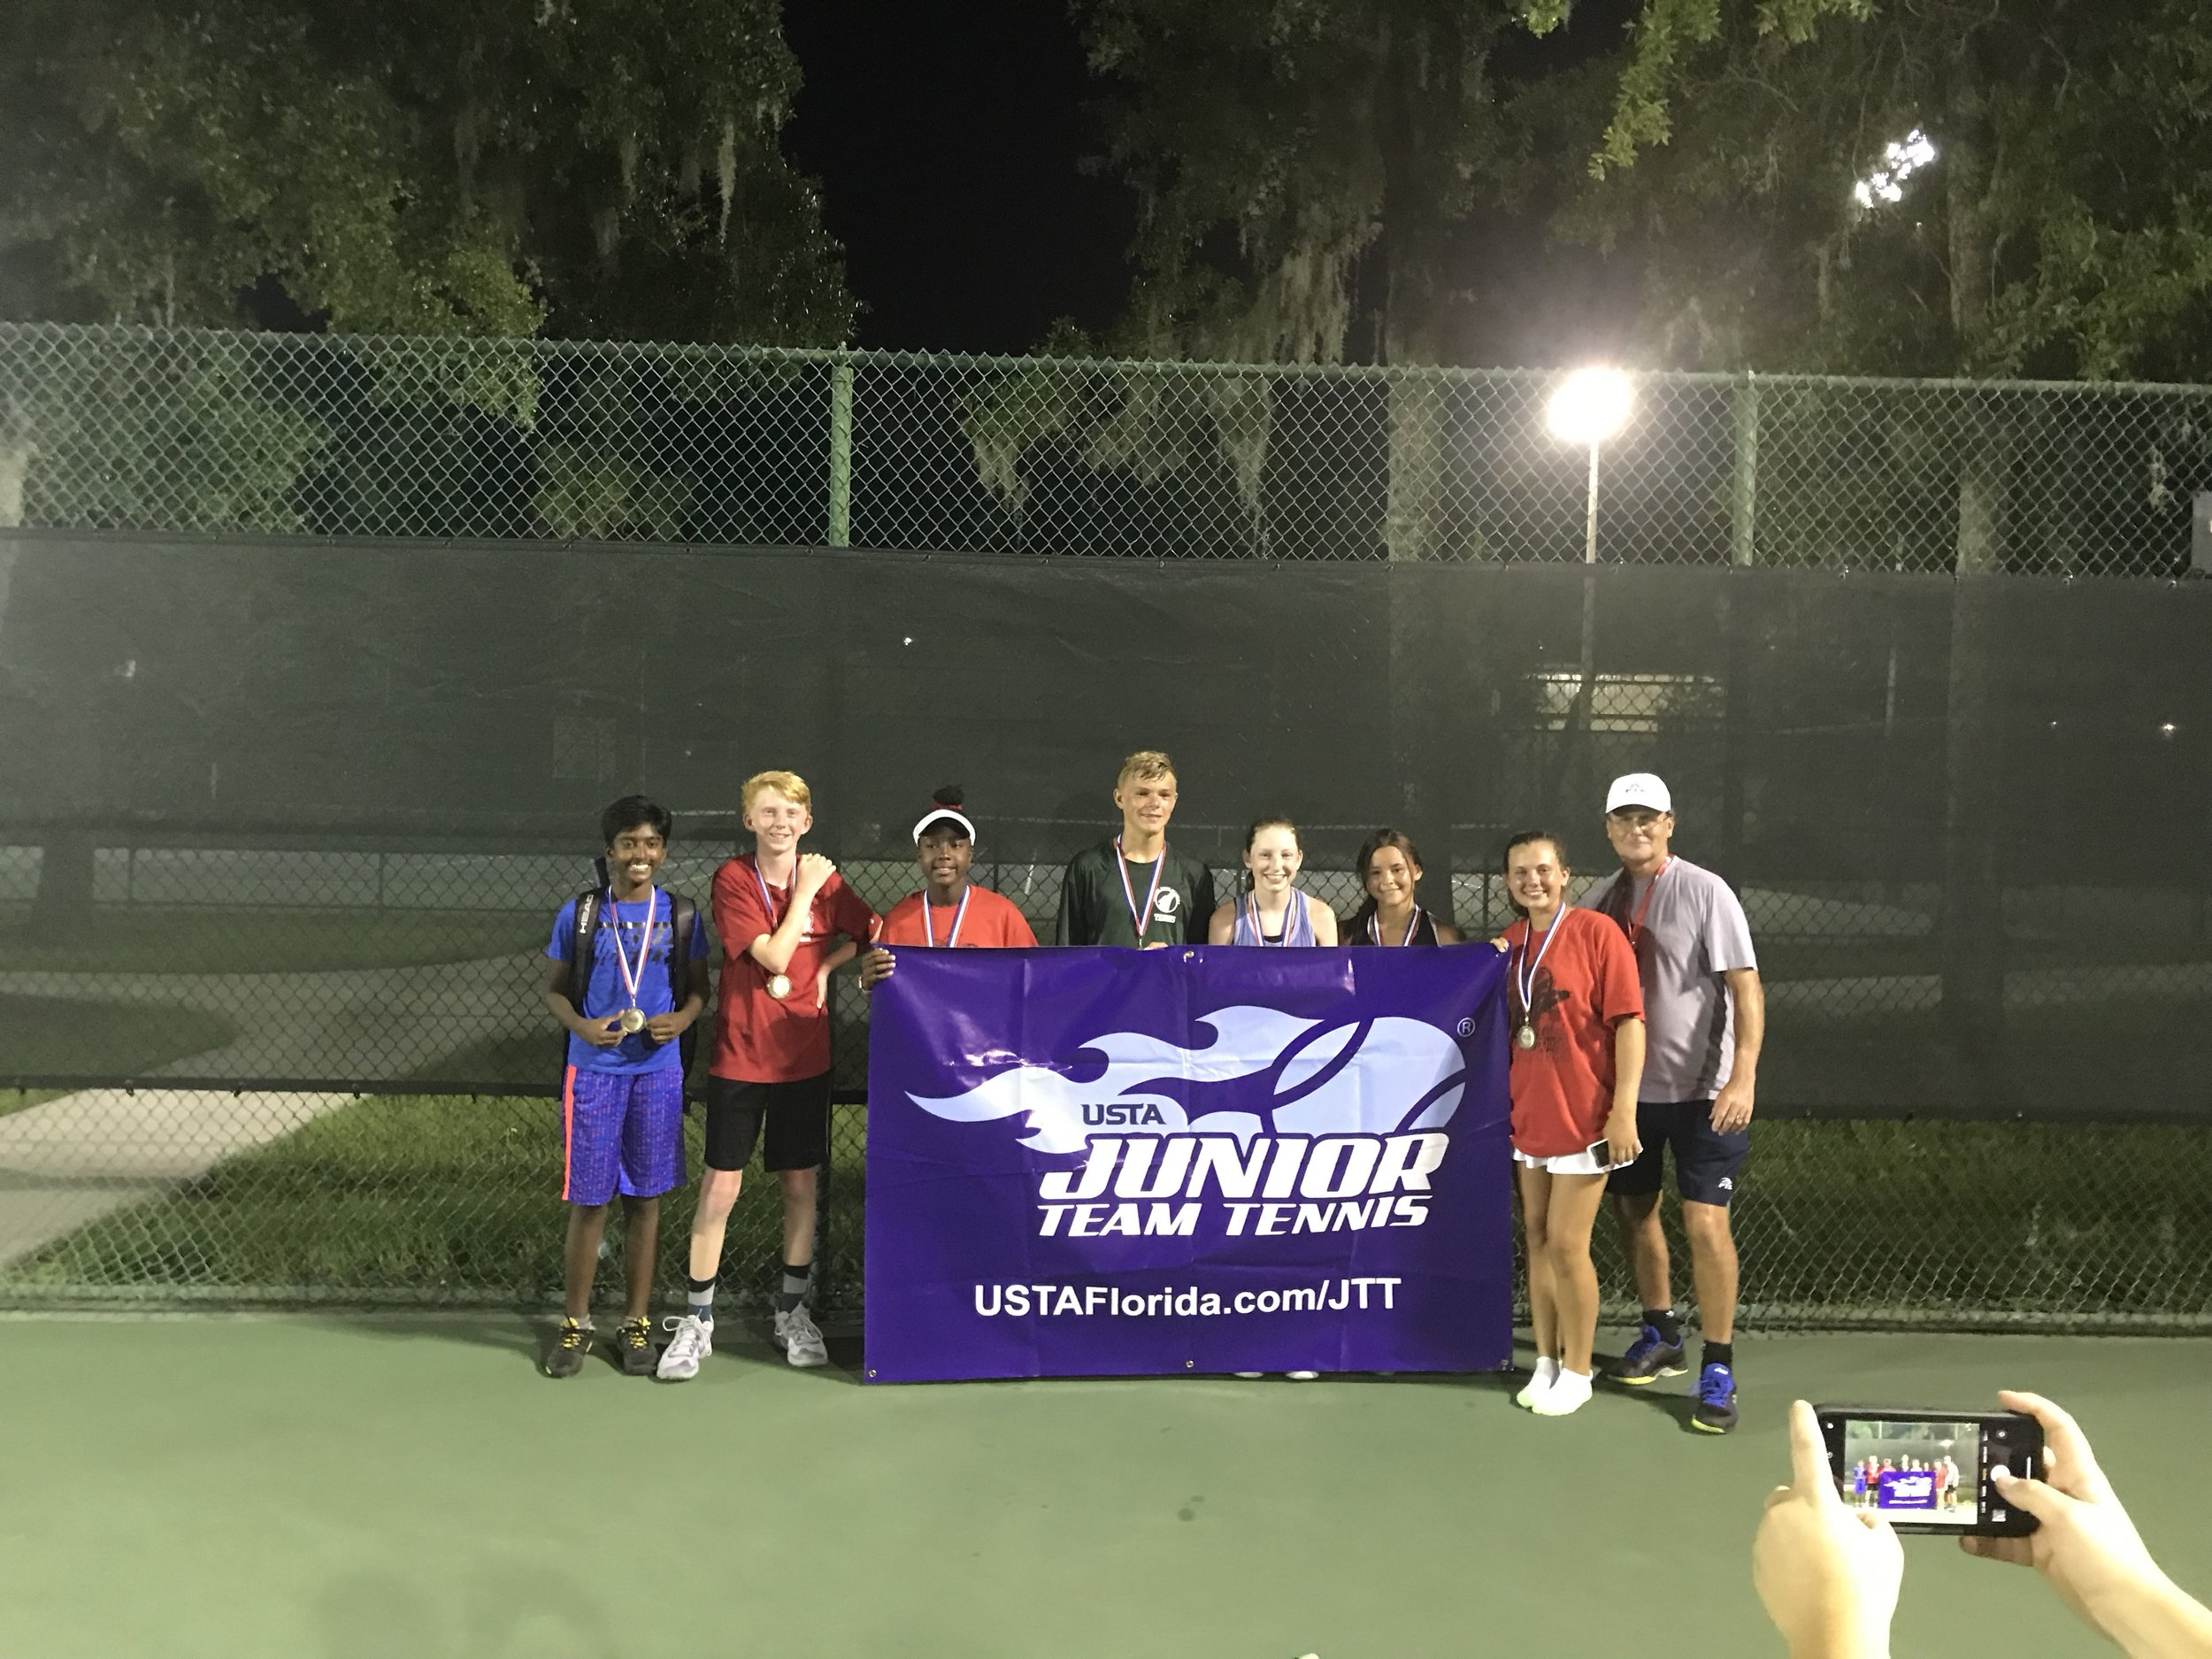 U14 intermediate Topspin Terminators